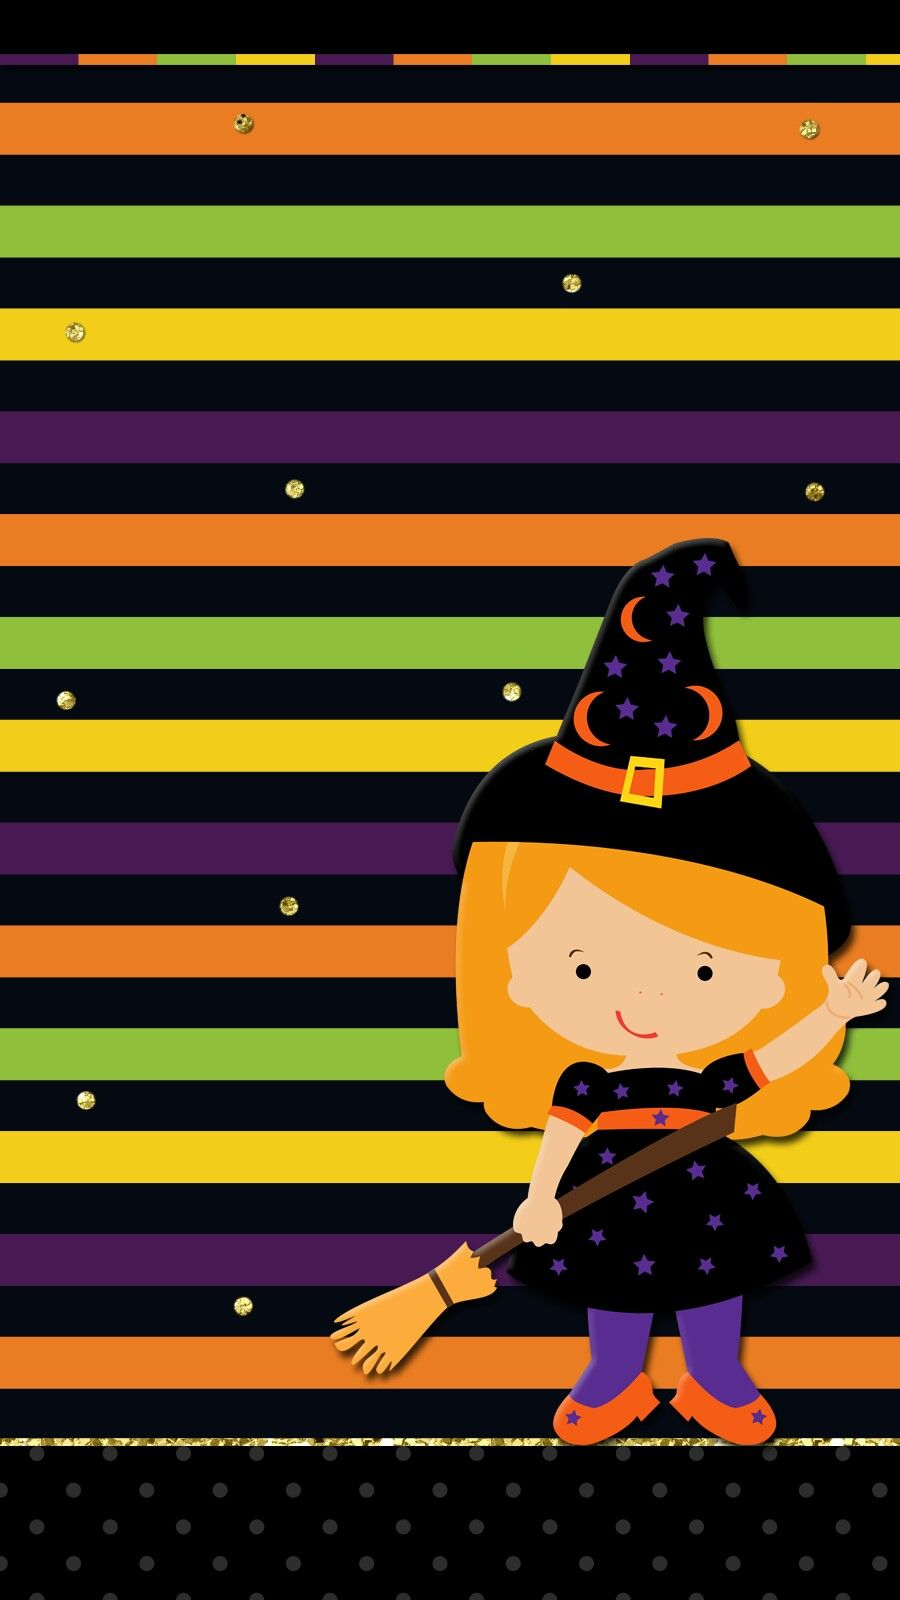 Halloween Witch Wallpaper Iphone Android Cute Halloween Wallpaper Halloween Holiday Wallpaper